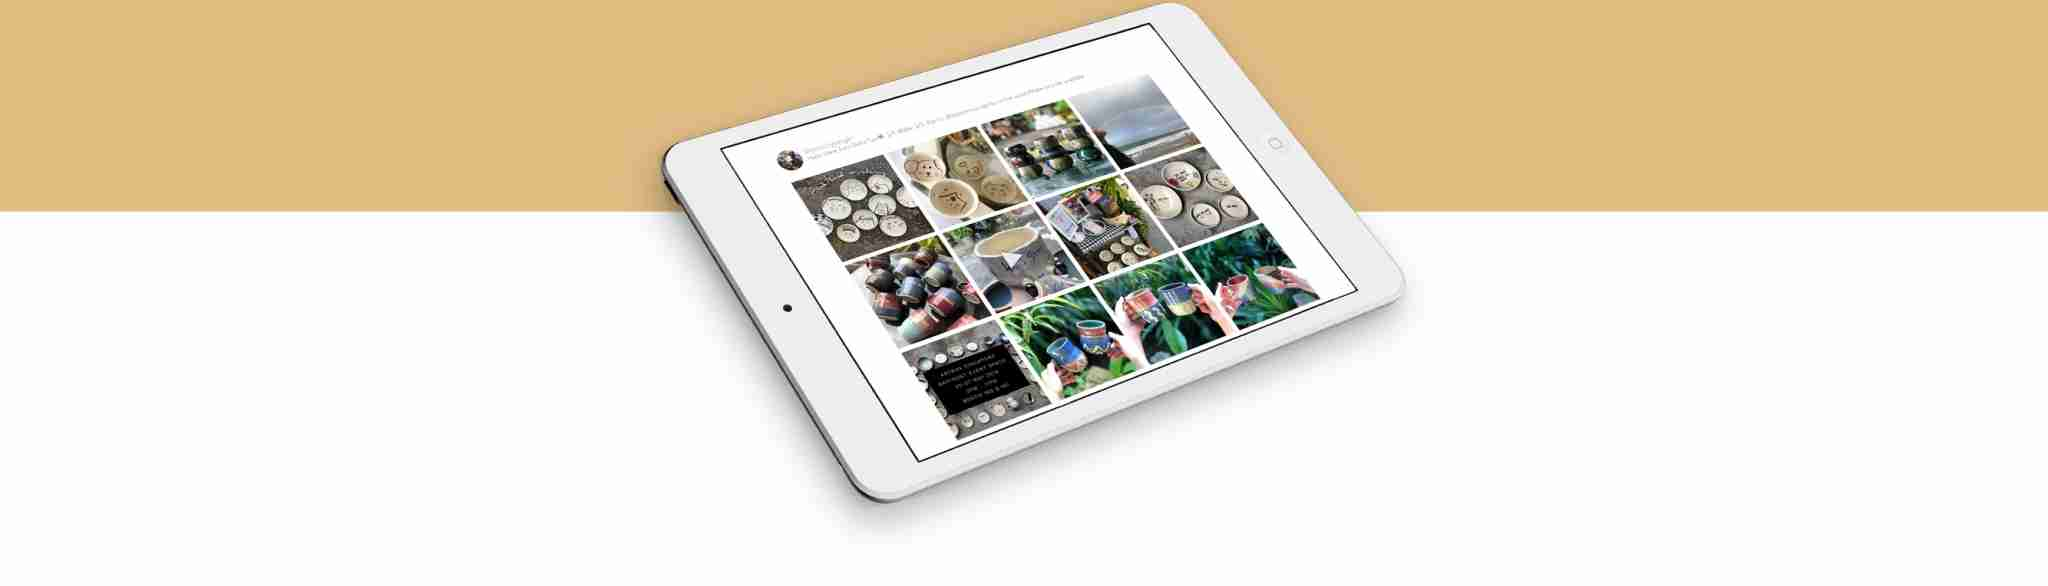 thow kwang tablet web design